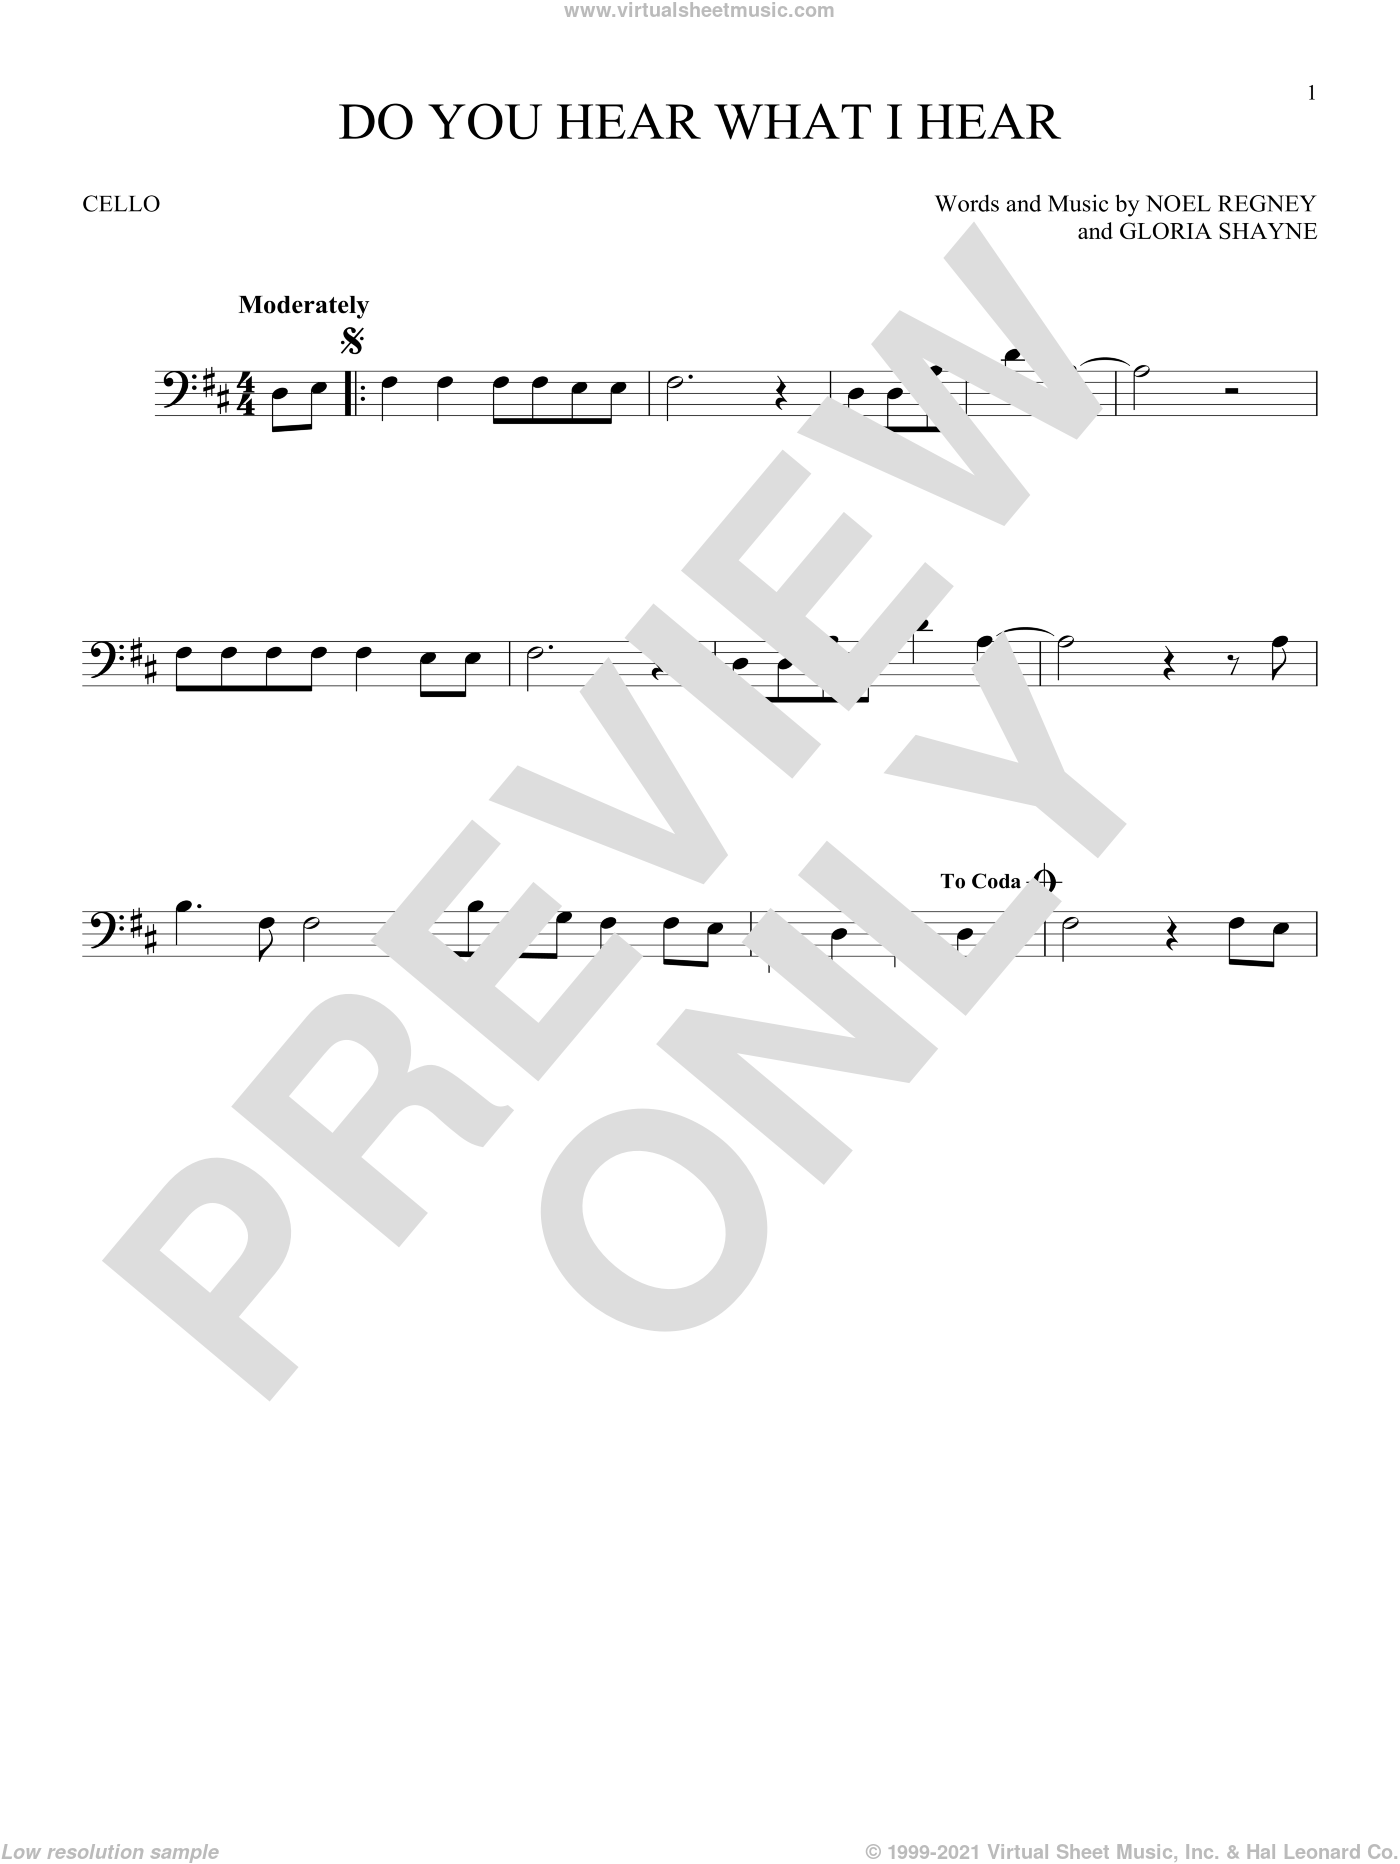 Do You Hear What I Hear sheet music for cello solo by Gloria Shayne, Carole King, Carrie Underwood, Susan Boyle feat. Amber Stassi, Noel Regney and Noel Regney & Gloria Shayne, intermediate skill level